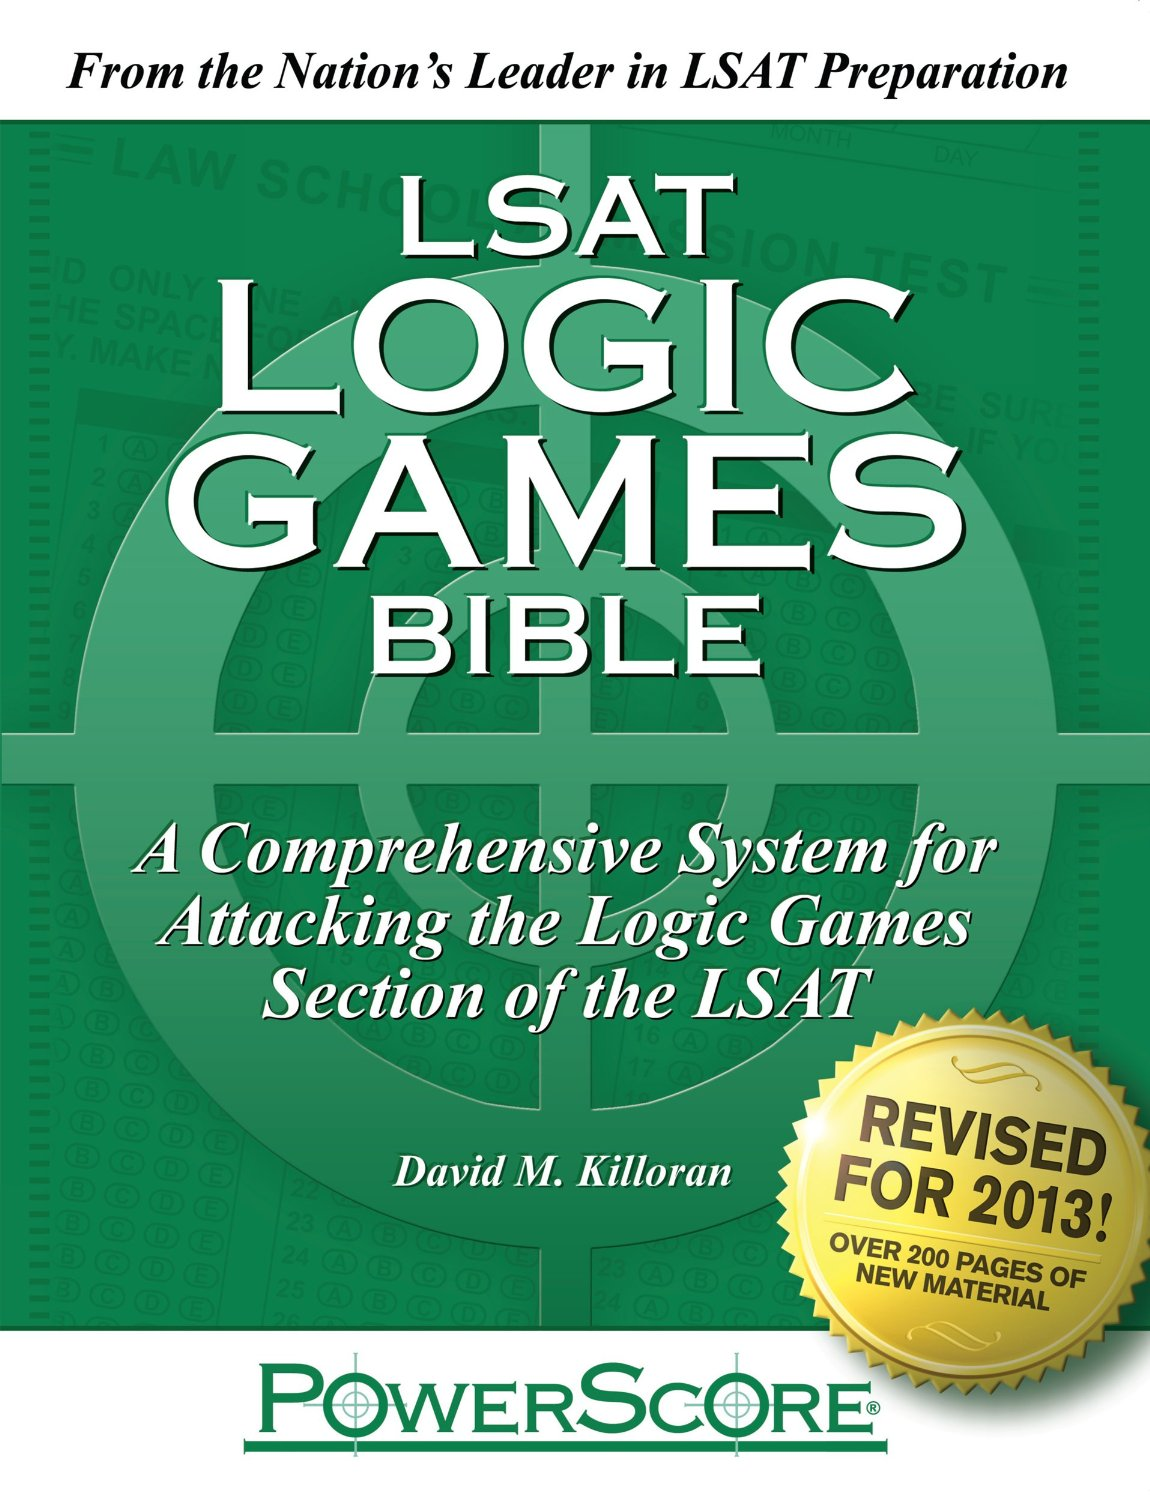 Powerscore lsat logic games bible new 2016 revised edition powerscore lsat logic games bible new 2016 revised edition lsat prep book reviews malvernweather Choice Image